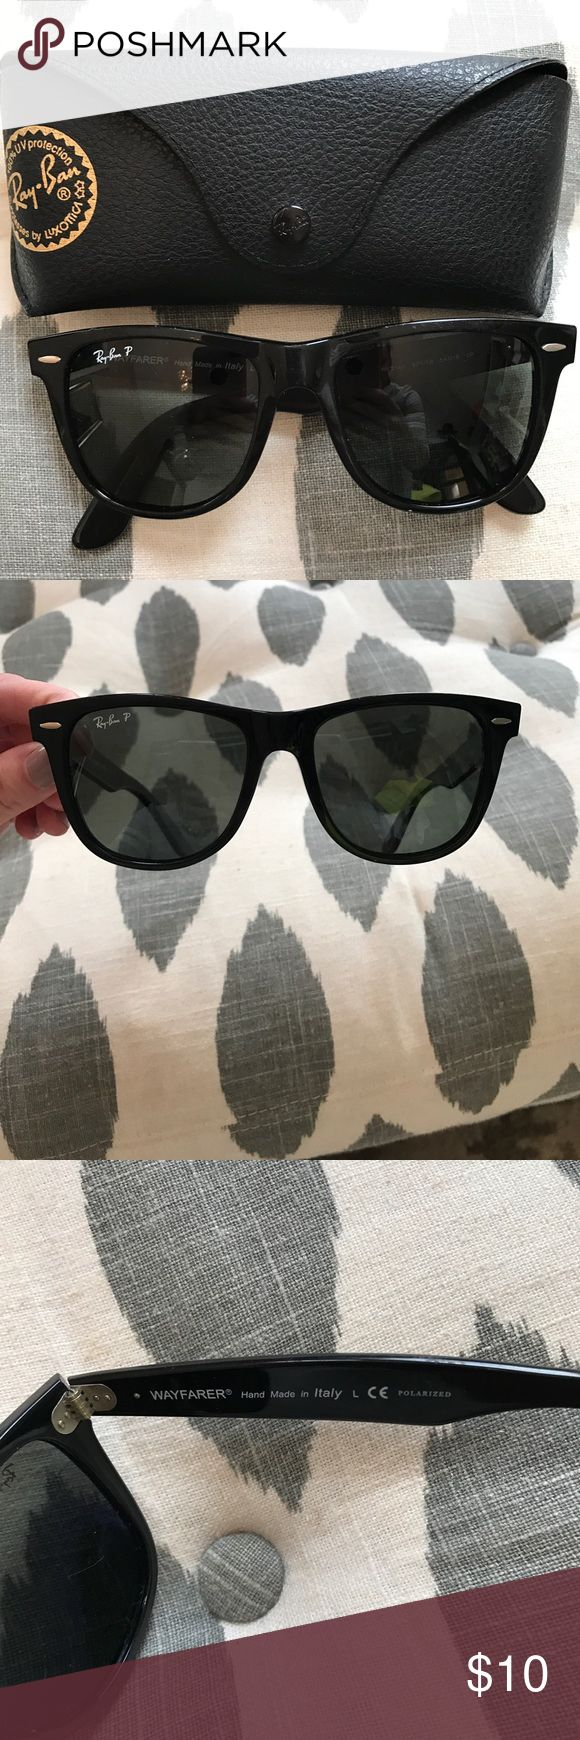 Ray ban original wayfarer sunglasses Black polarized ray ban wayfarer (original size) Disclaimer: one lens is slightly scratched.... still wearable though and does not block vision ray ban Accessories Glasses